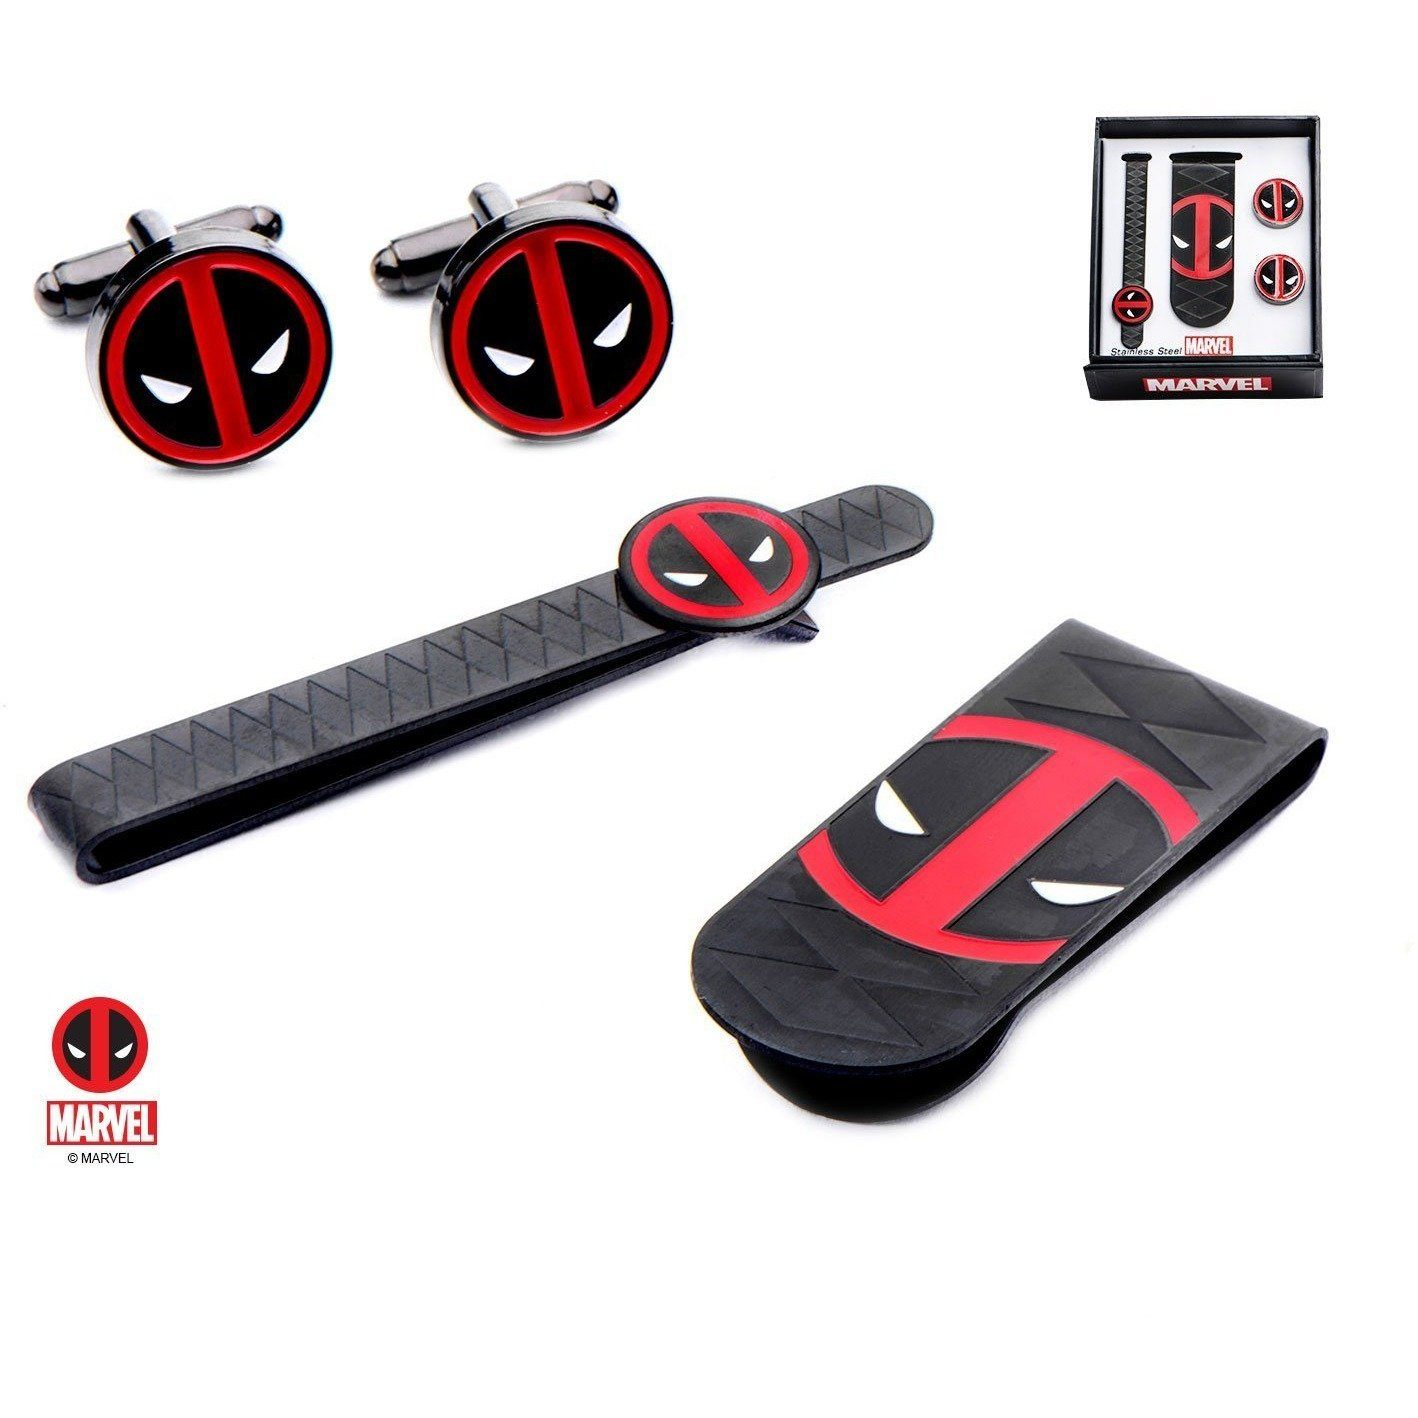 Marvel Deadpool Gift Set with Cufflinks Tie Bar and Money Clip Novelty Cufflinks Marvel Comics Marvel Deadpool Gift Set with Cufflinks Tie Bar and Money Clip